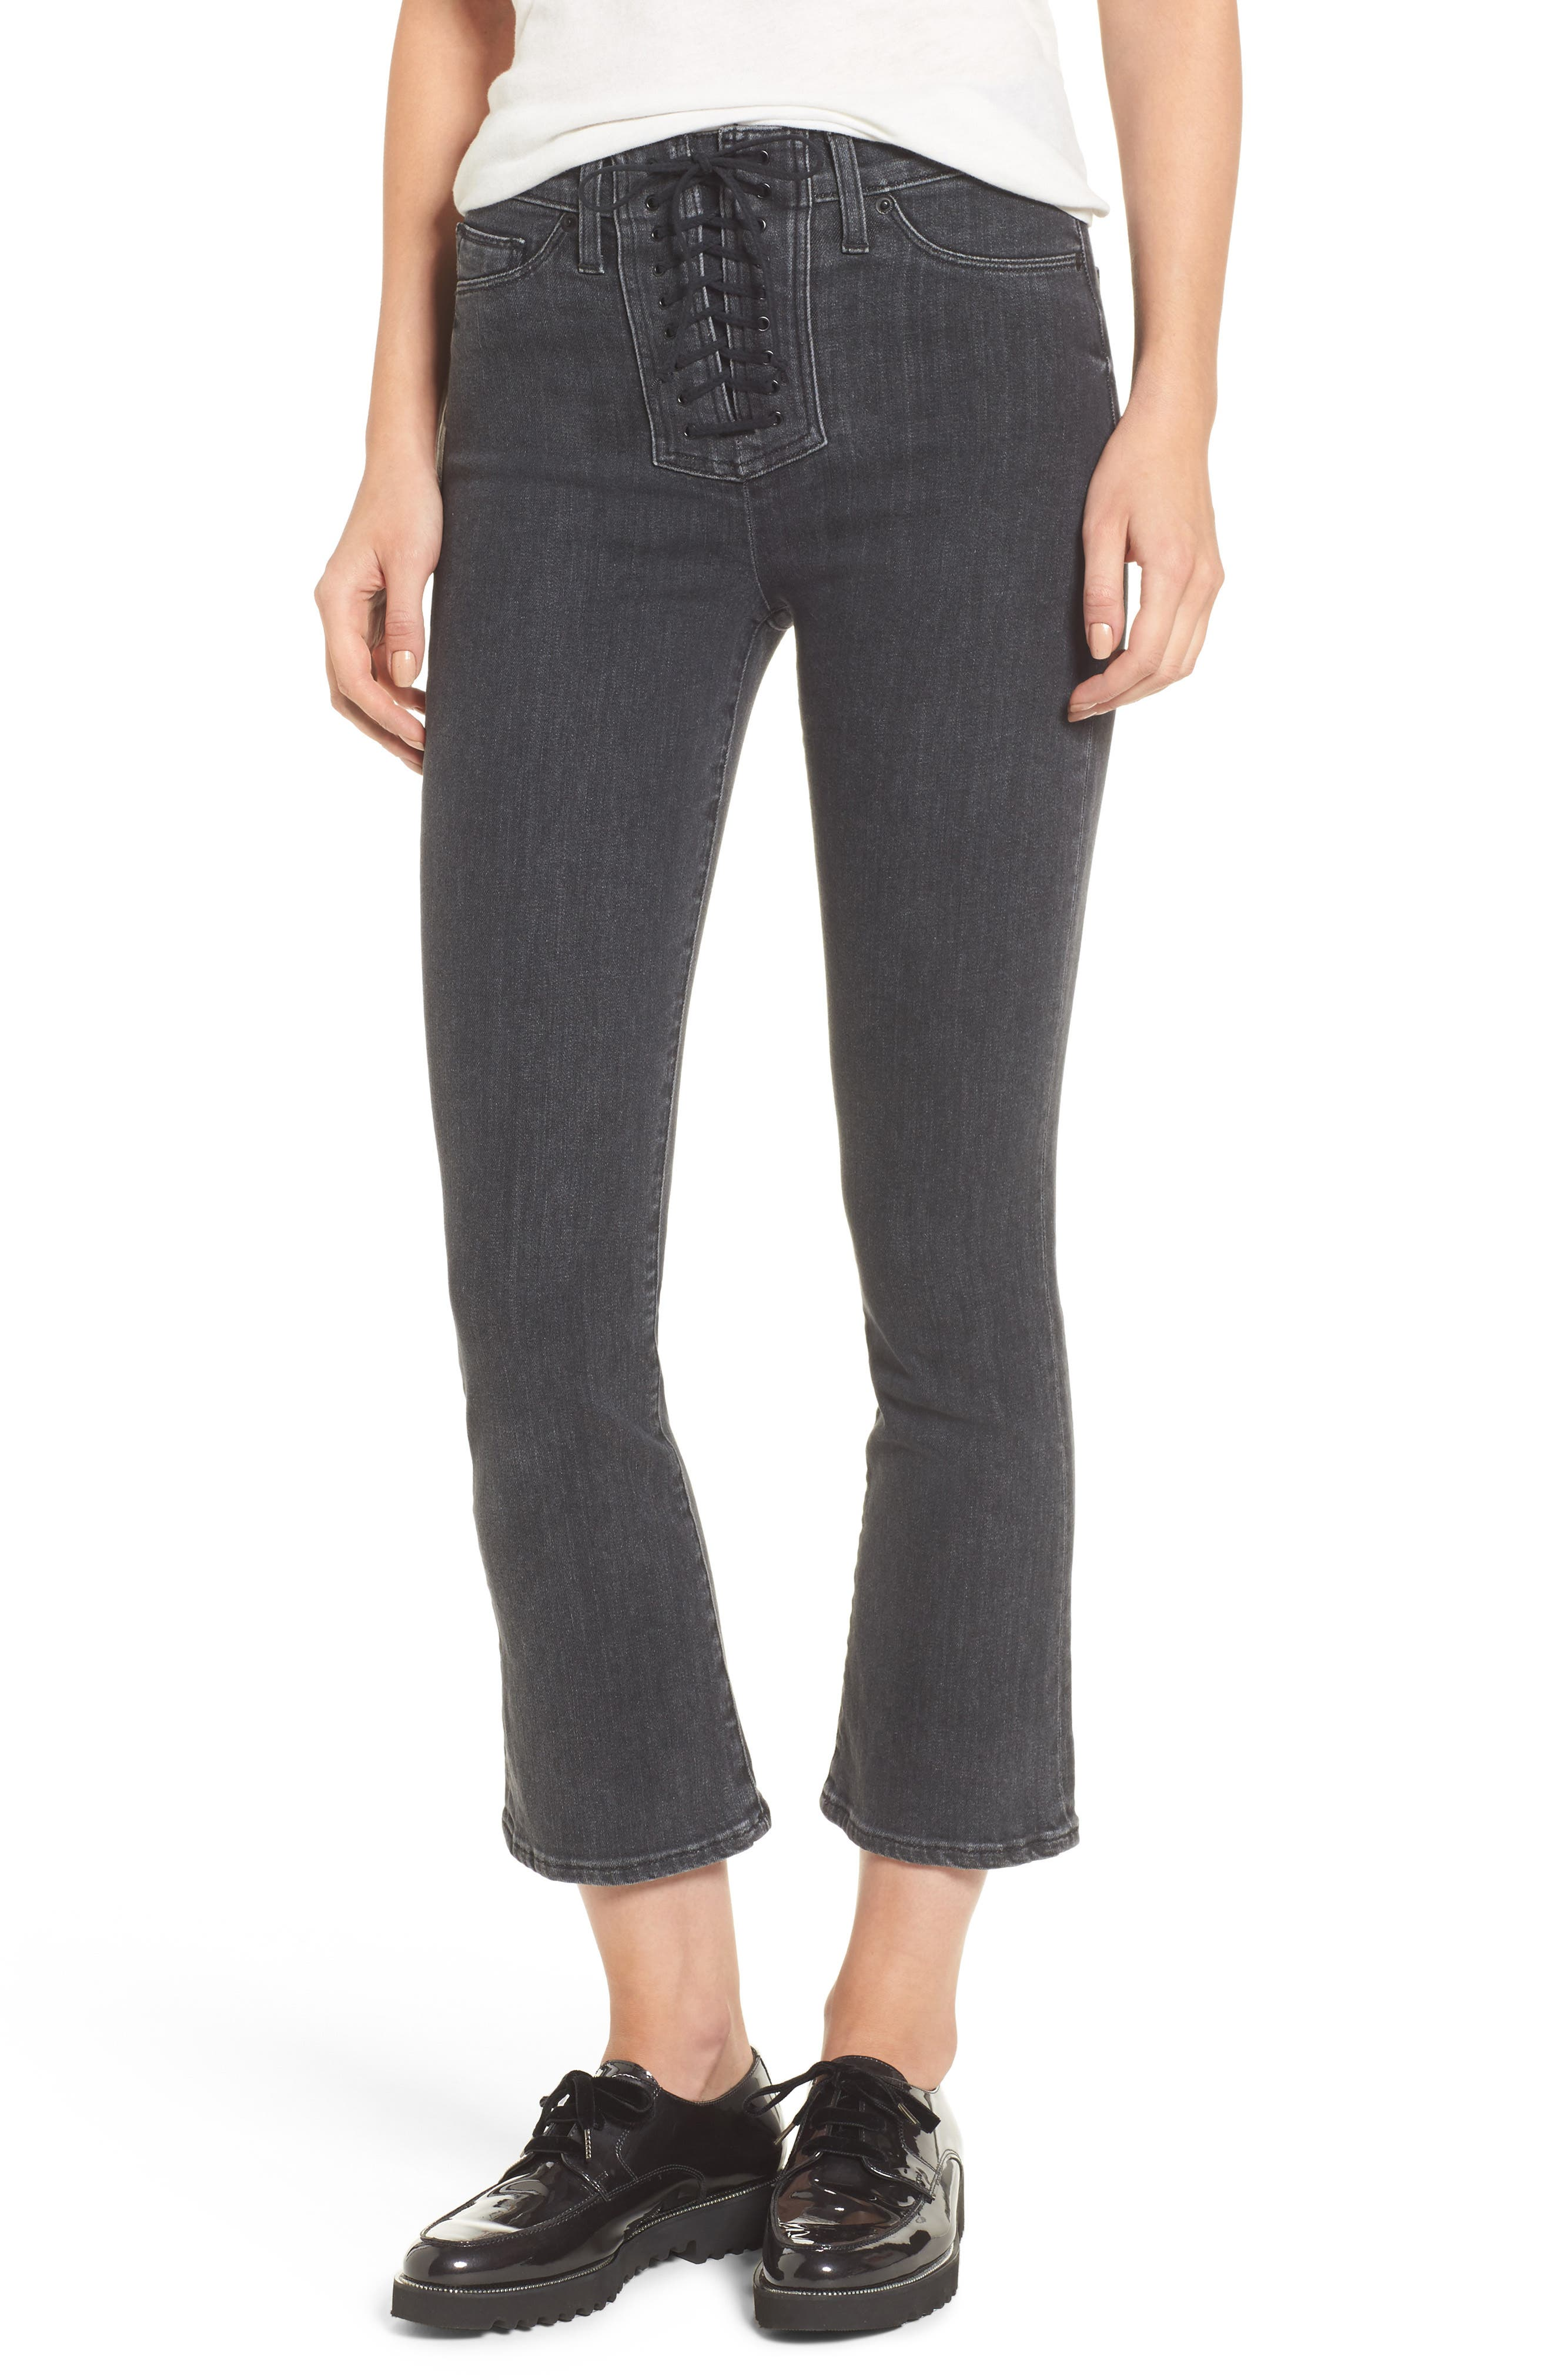 Alternate Image 1 Selected - Hudson Jeans Bullocks High Waist Lace-Up Crop Jeans (Disarm)